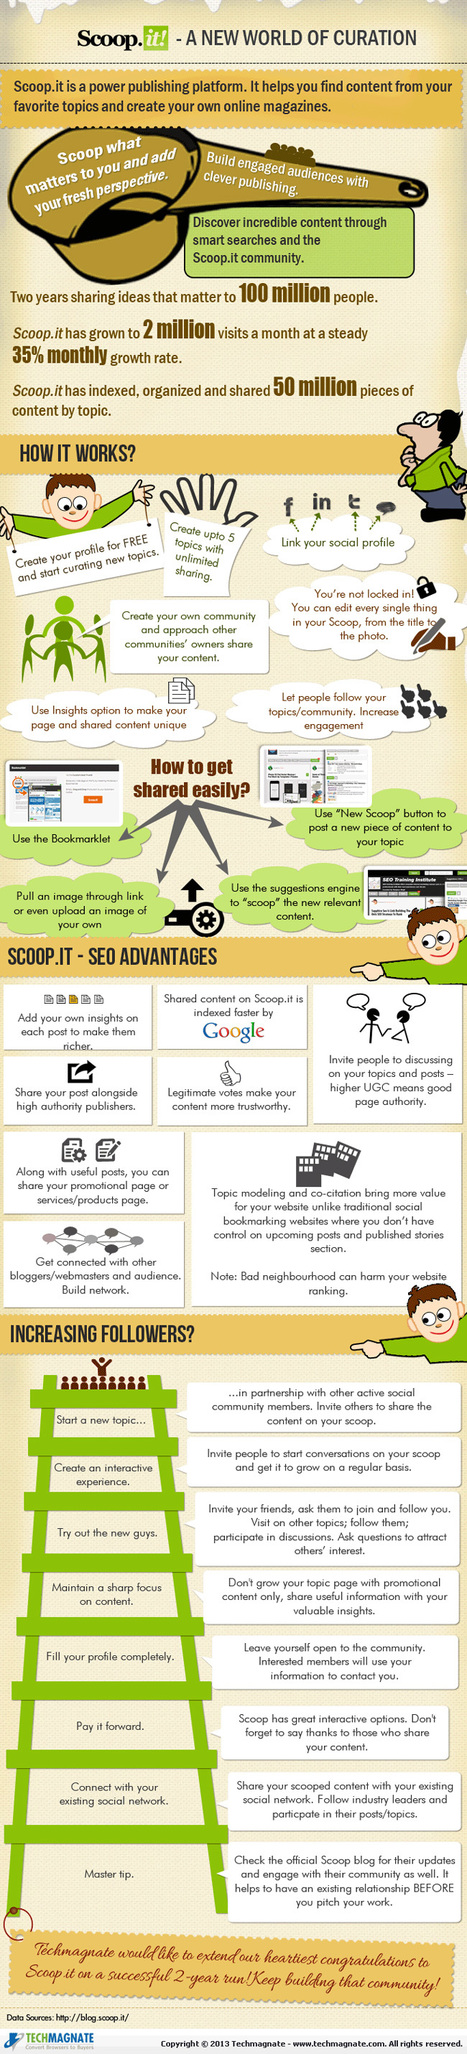 Scoop.It for SEO – A New World of Curation [Infographic] | ICT resources for teaching&learning | Scoop.it